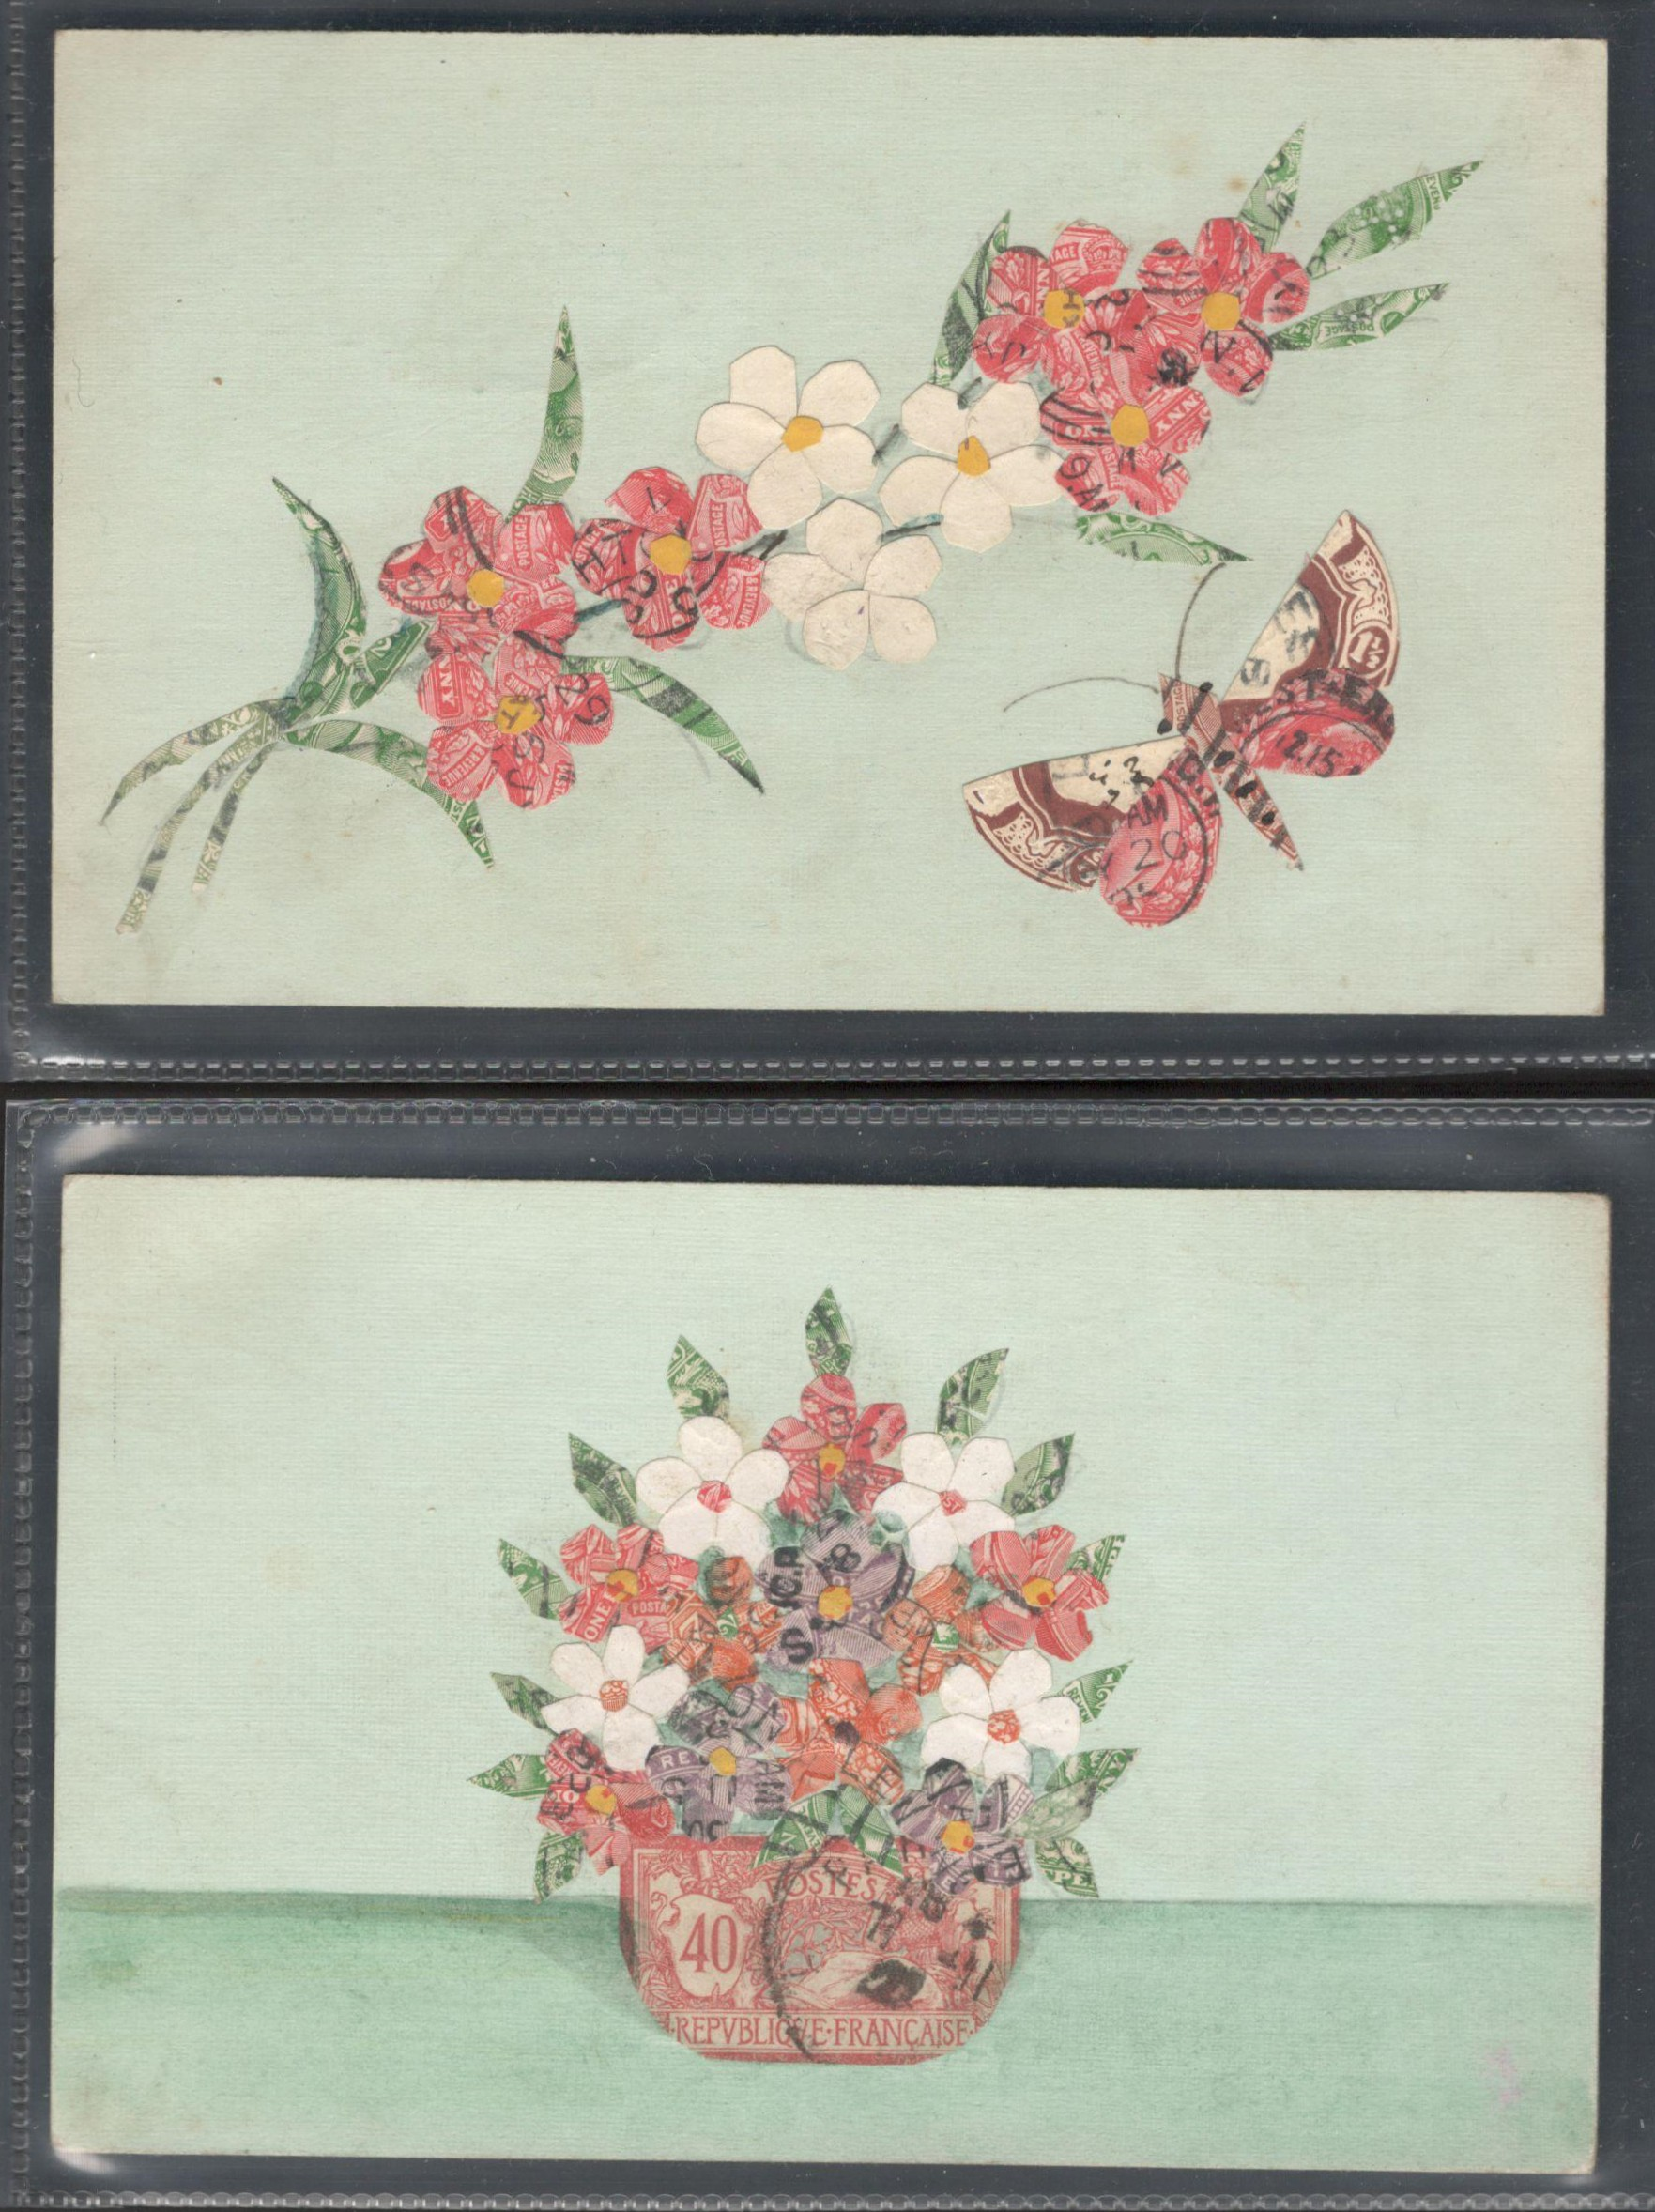 Lot 63 - TWO STAMP MONTAGE POSTCARDS IN VARIOUS CONDITION